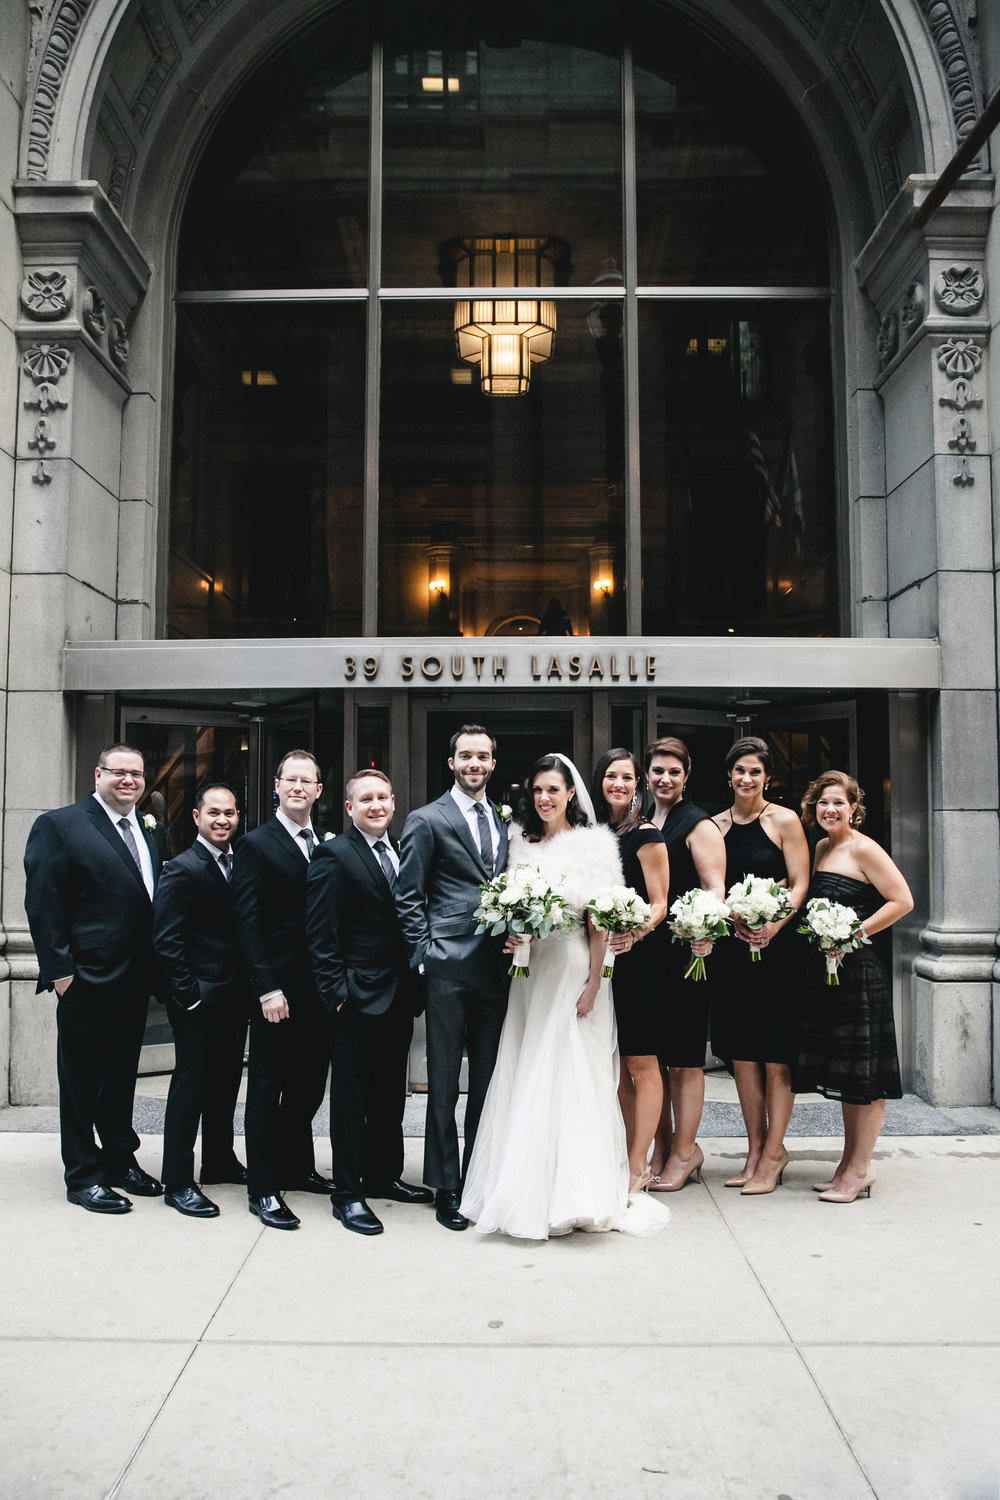 LisaDiederichPhotography_Brooke&NeilWedding_Blog-17.jpg